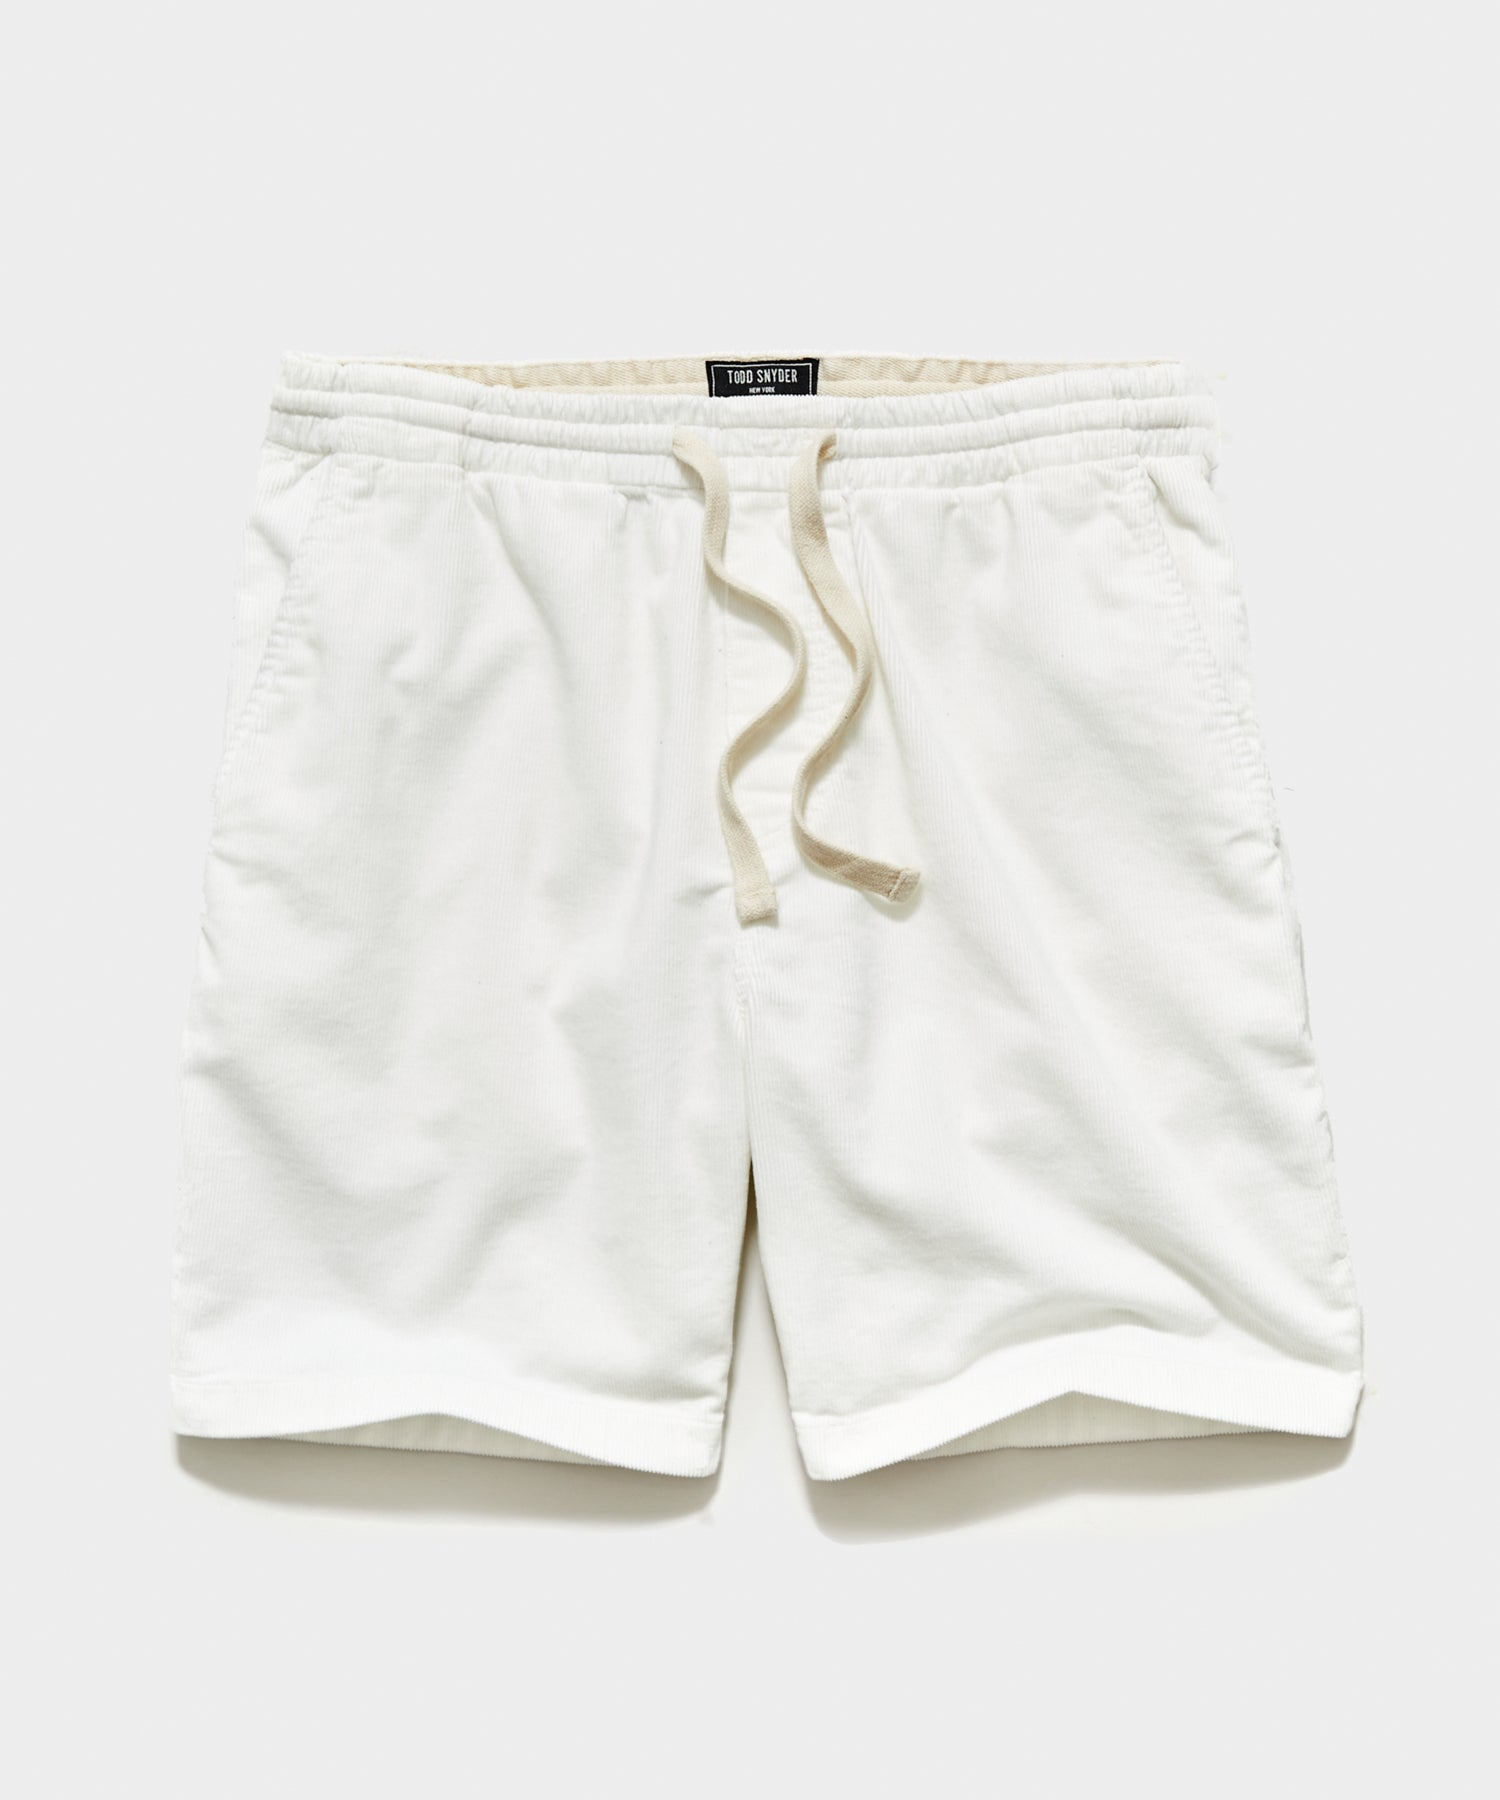 "7"" Washed Corduroy Weekend Short in Antique White"